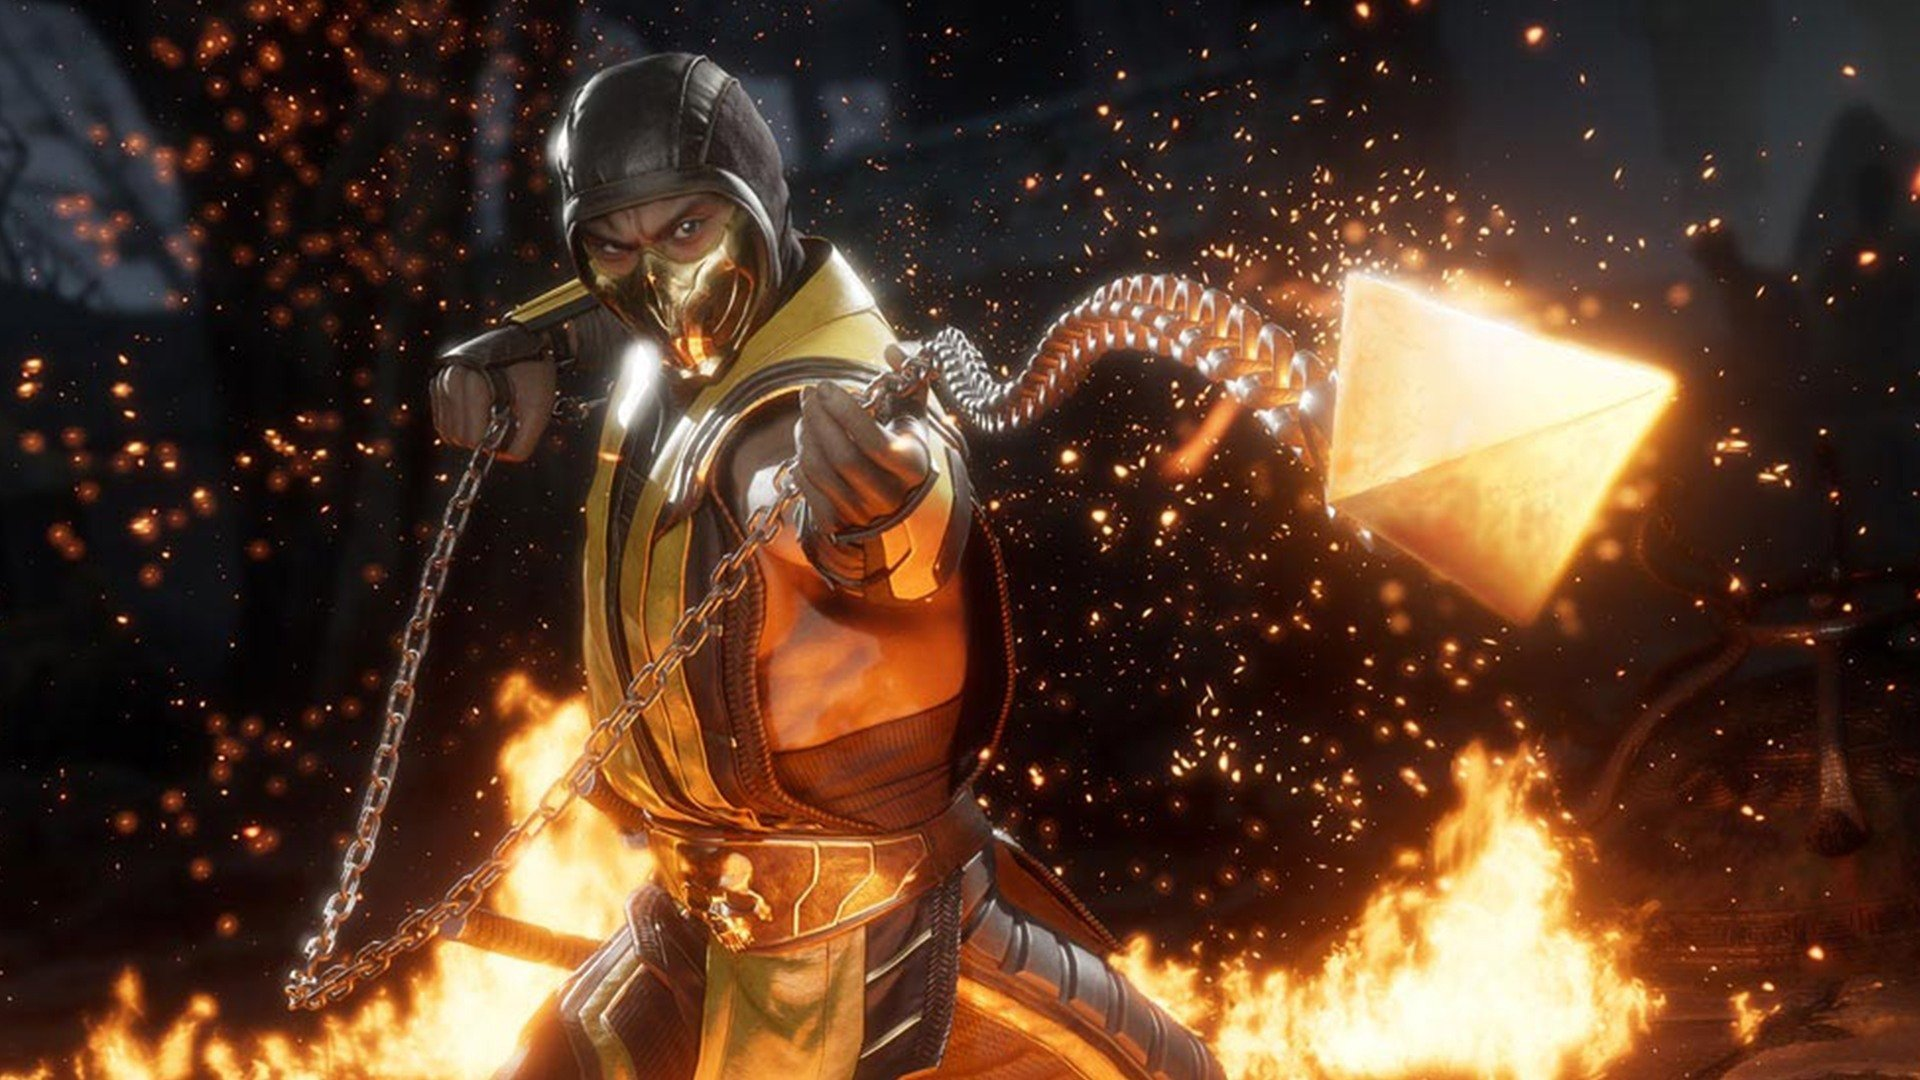 Mortal Kombat Live Wallpaper Posted By Zoey Tremblay